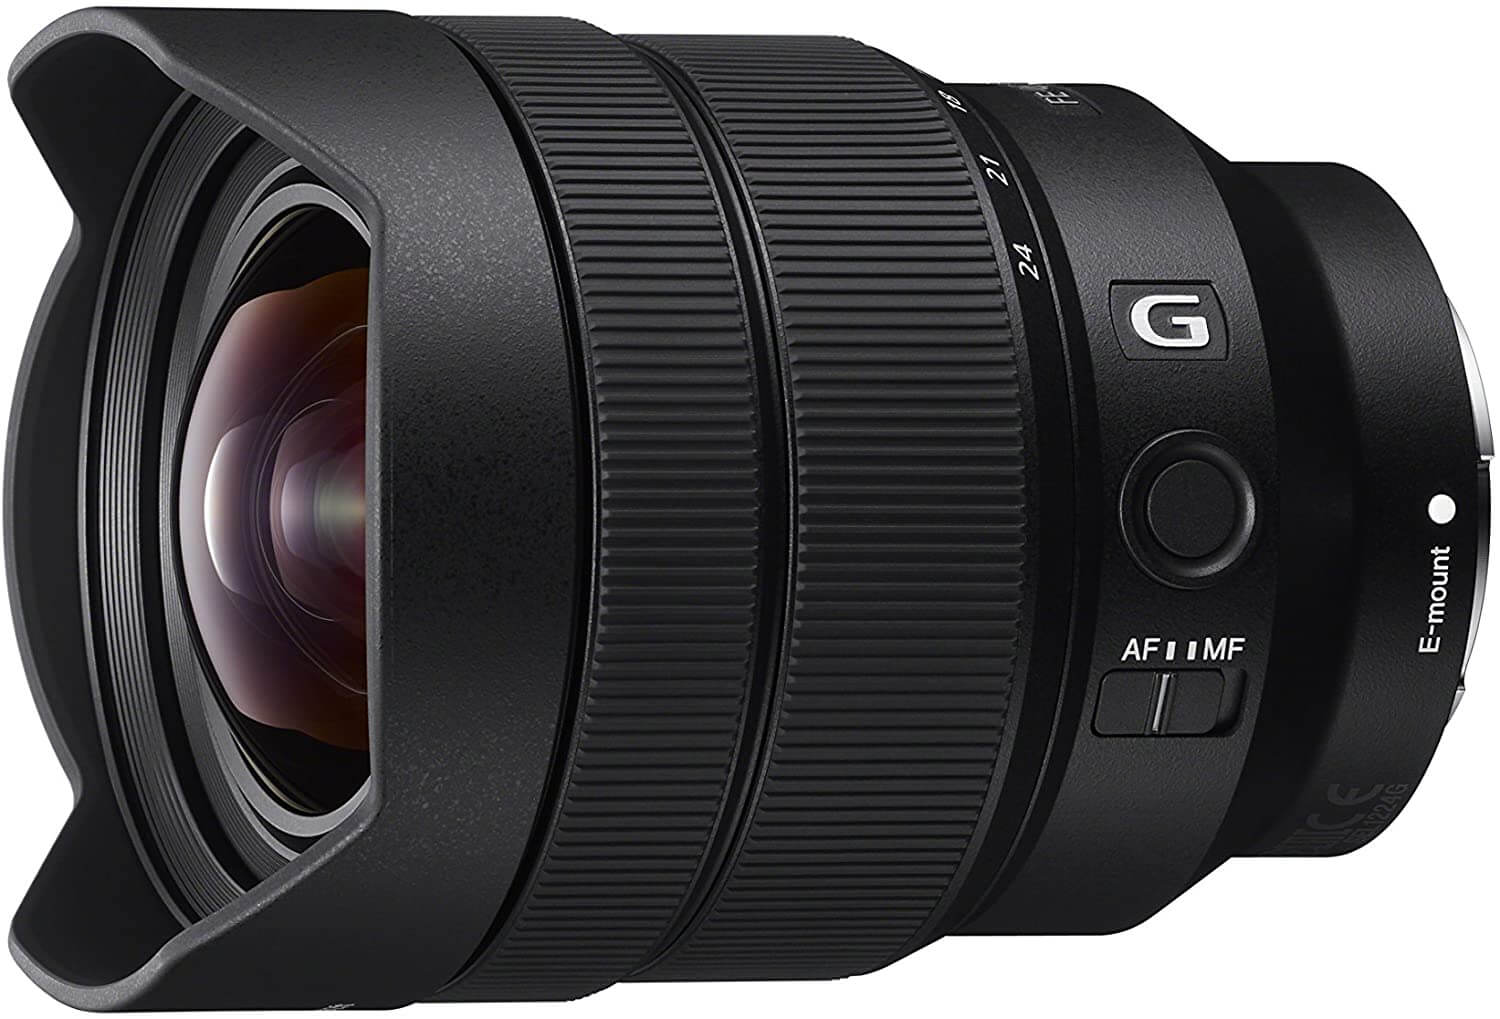 Sony - FE 12-24mm F4 G Wide-angle Zoom Lens